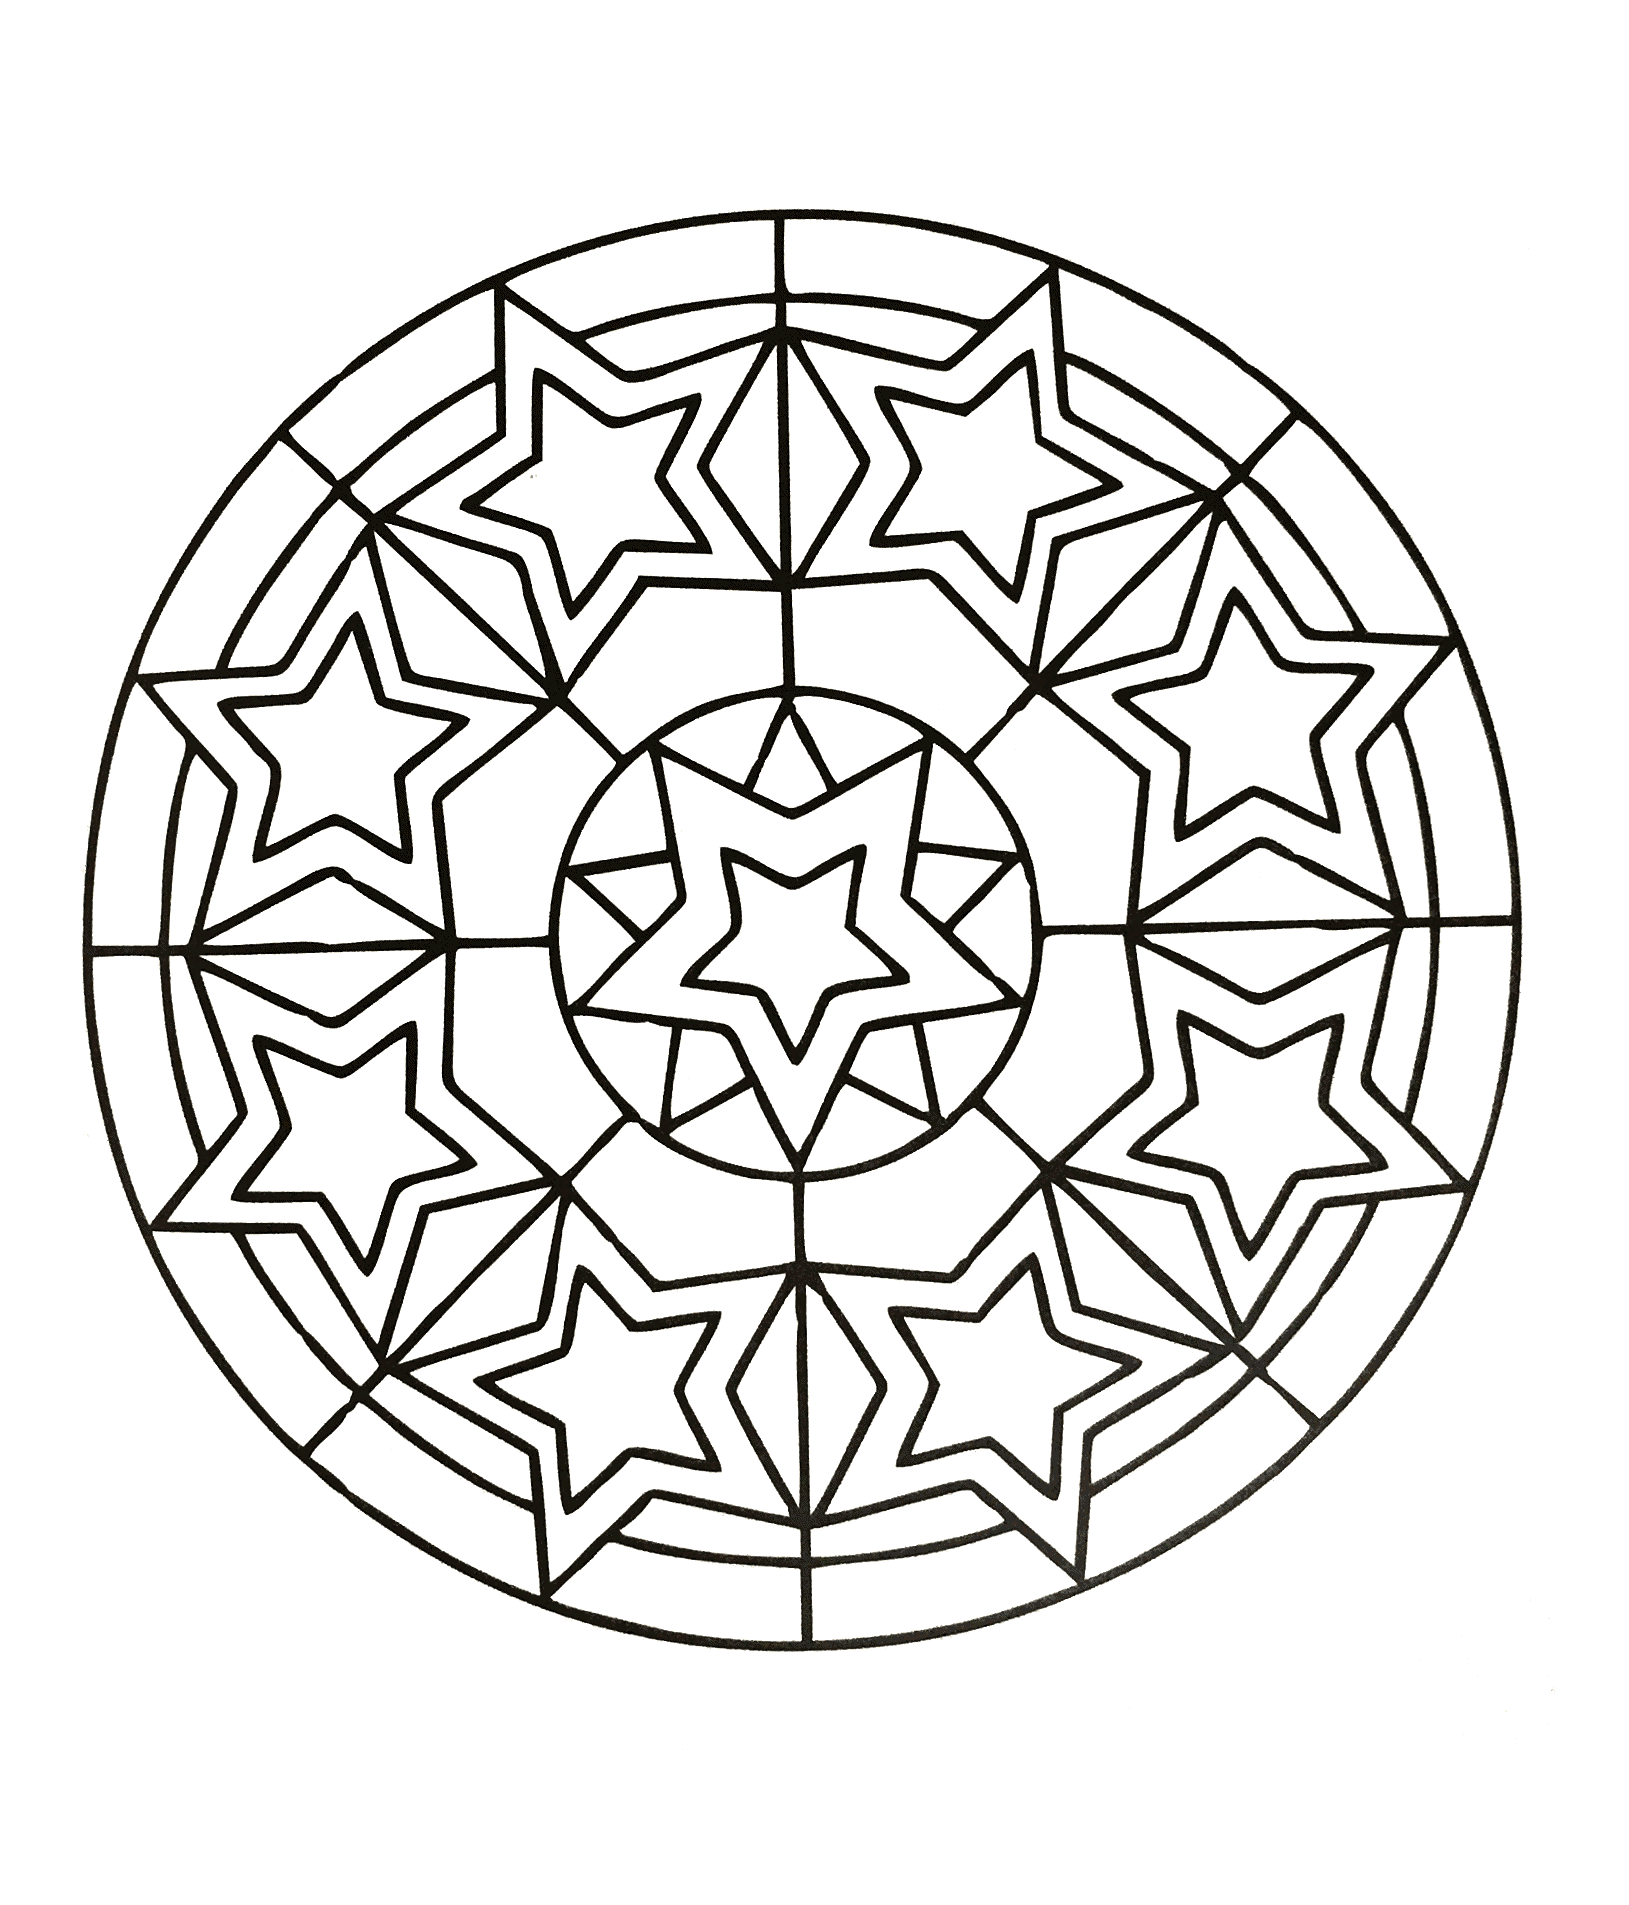 simple mandala 78 from the gallery kids mandalas - Simple Mandala Coloring Pages Kid